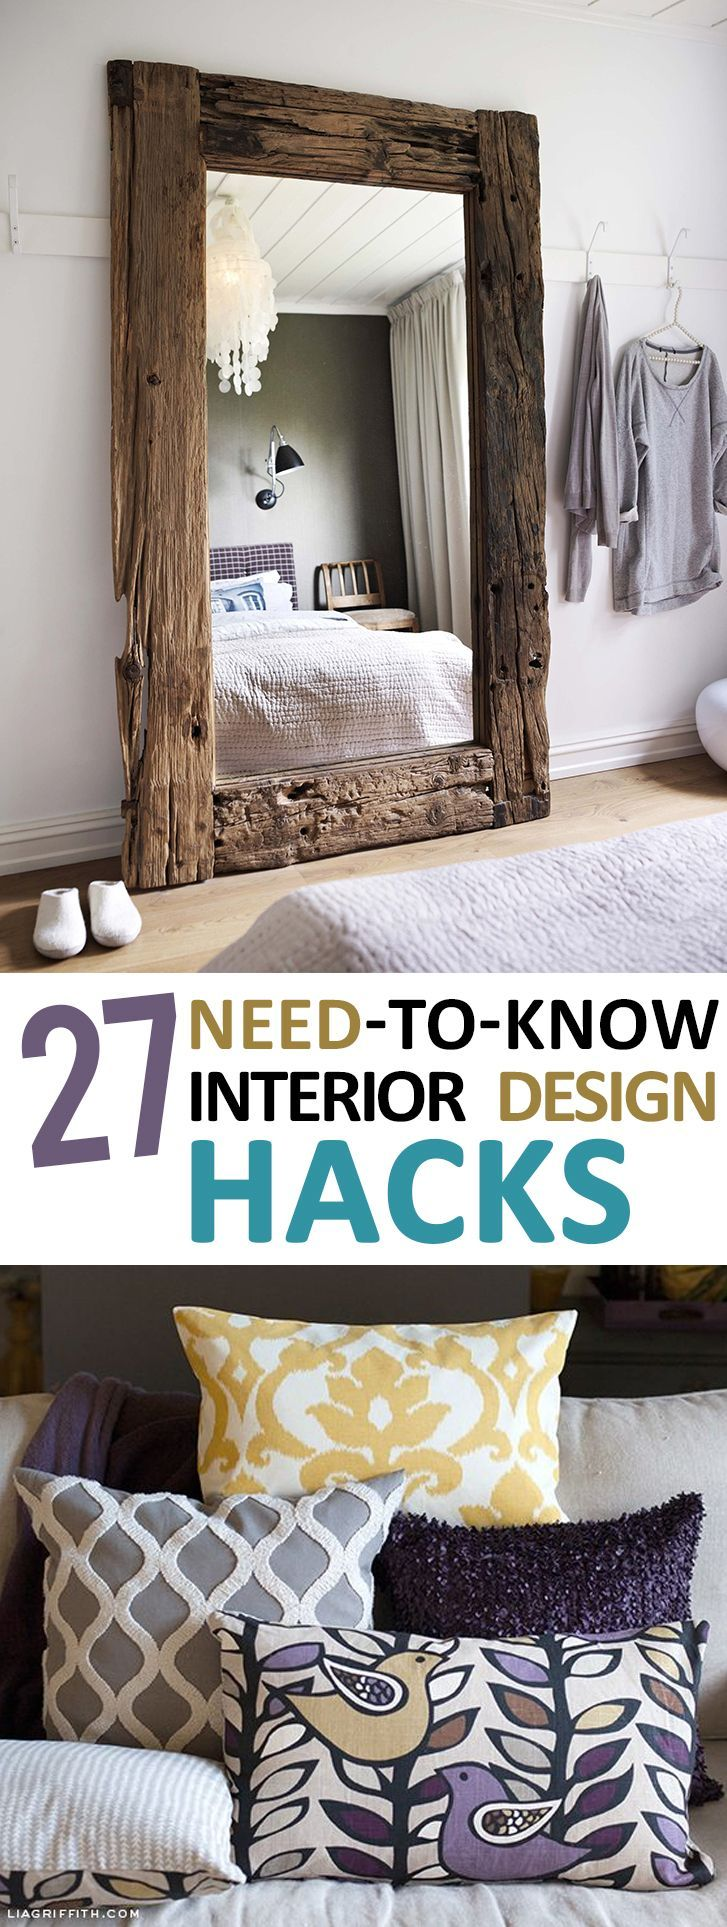 188 best interiors how to 39 s images on pinterest - Home interior designs hacks ...